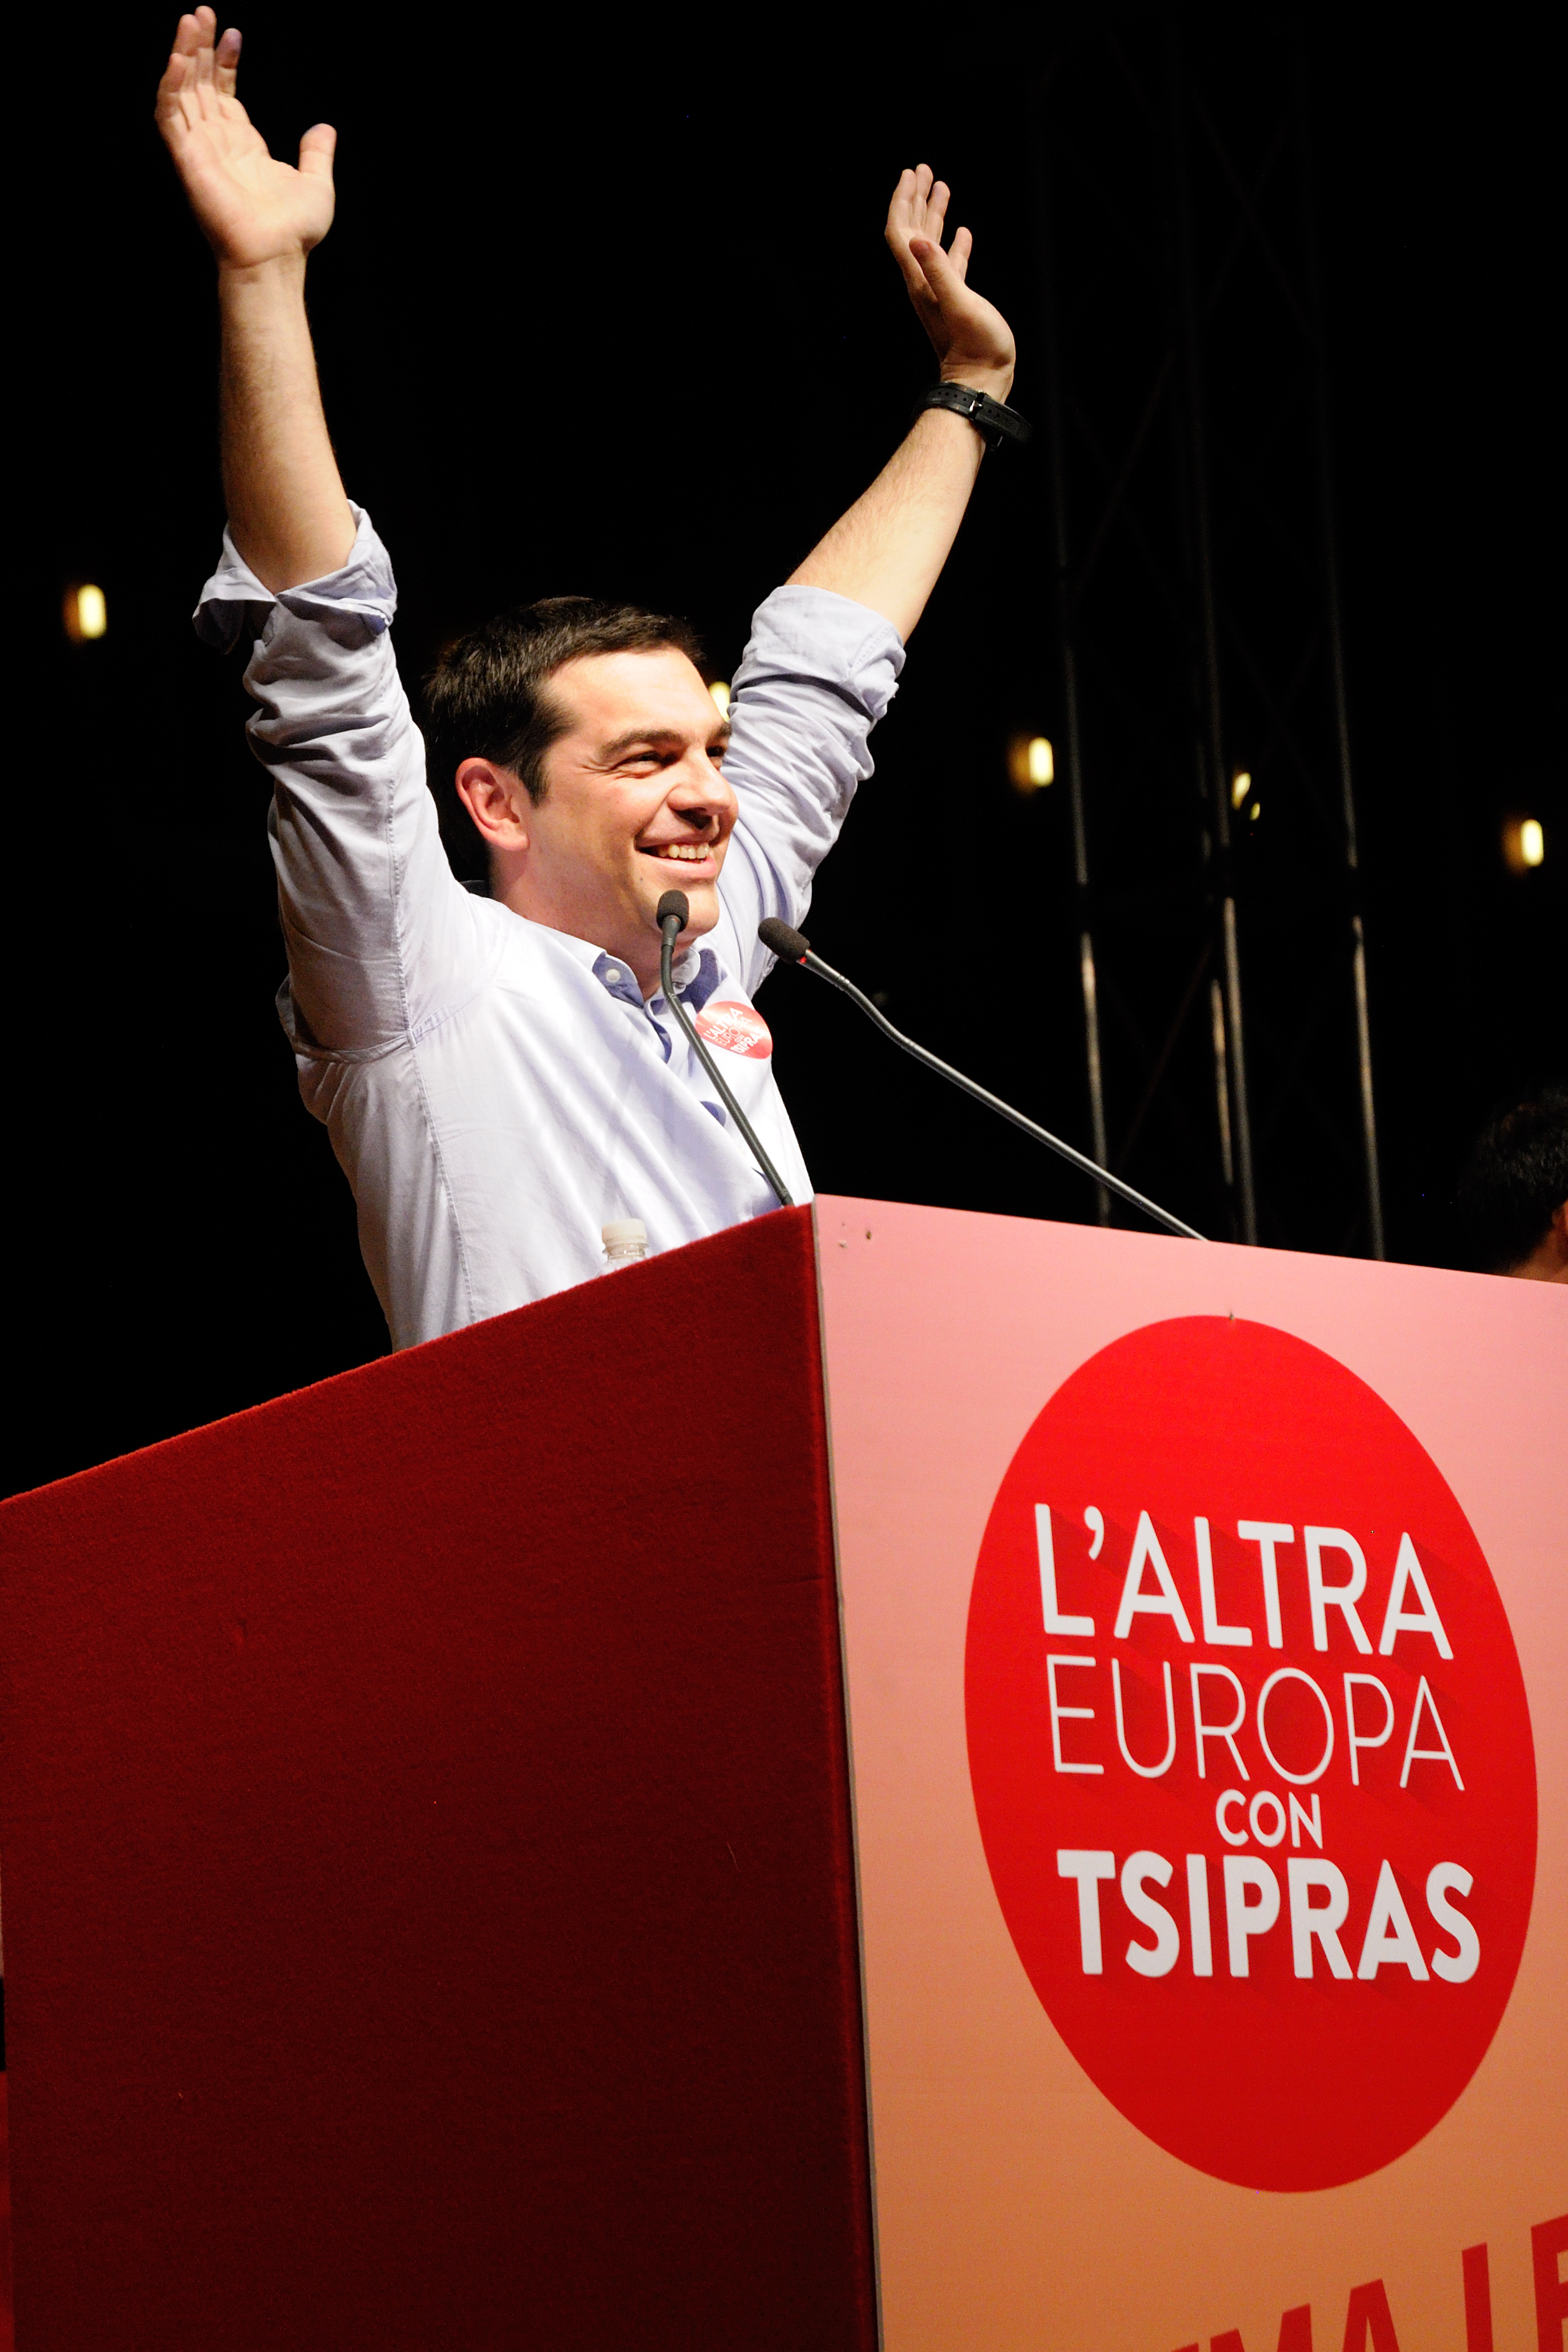 Prime Minister Tsipras at a rally in Bologna.